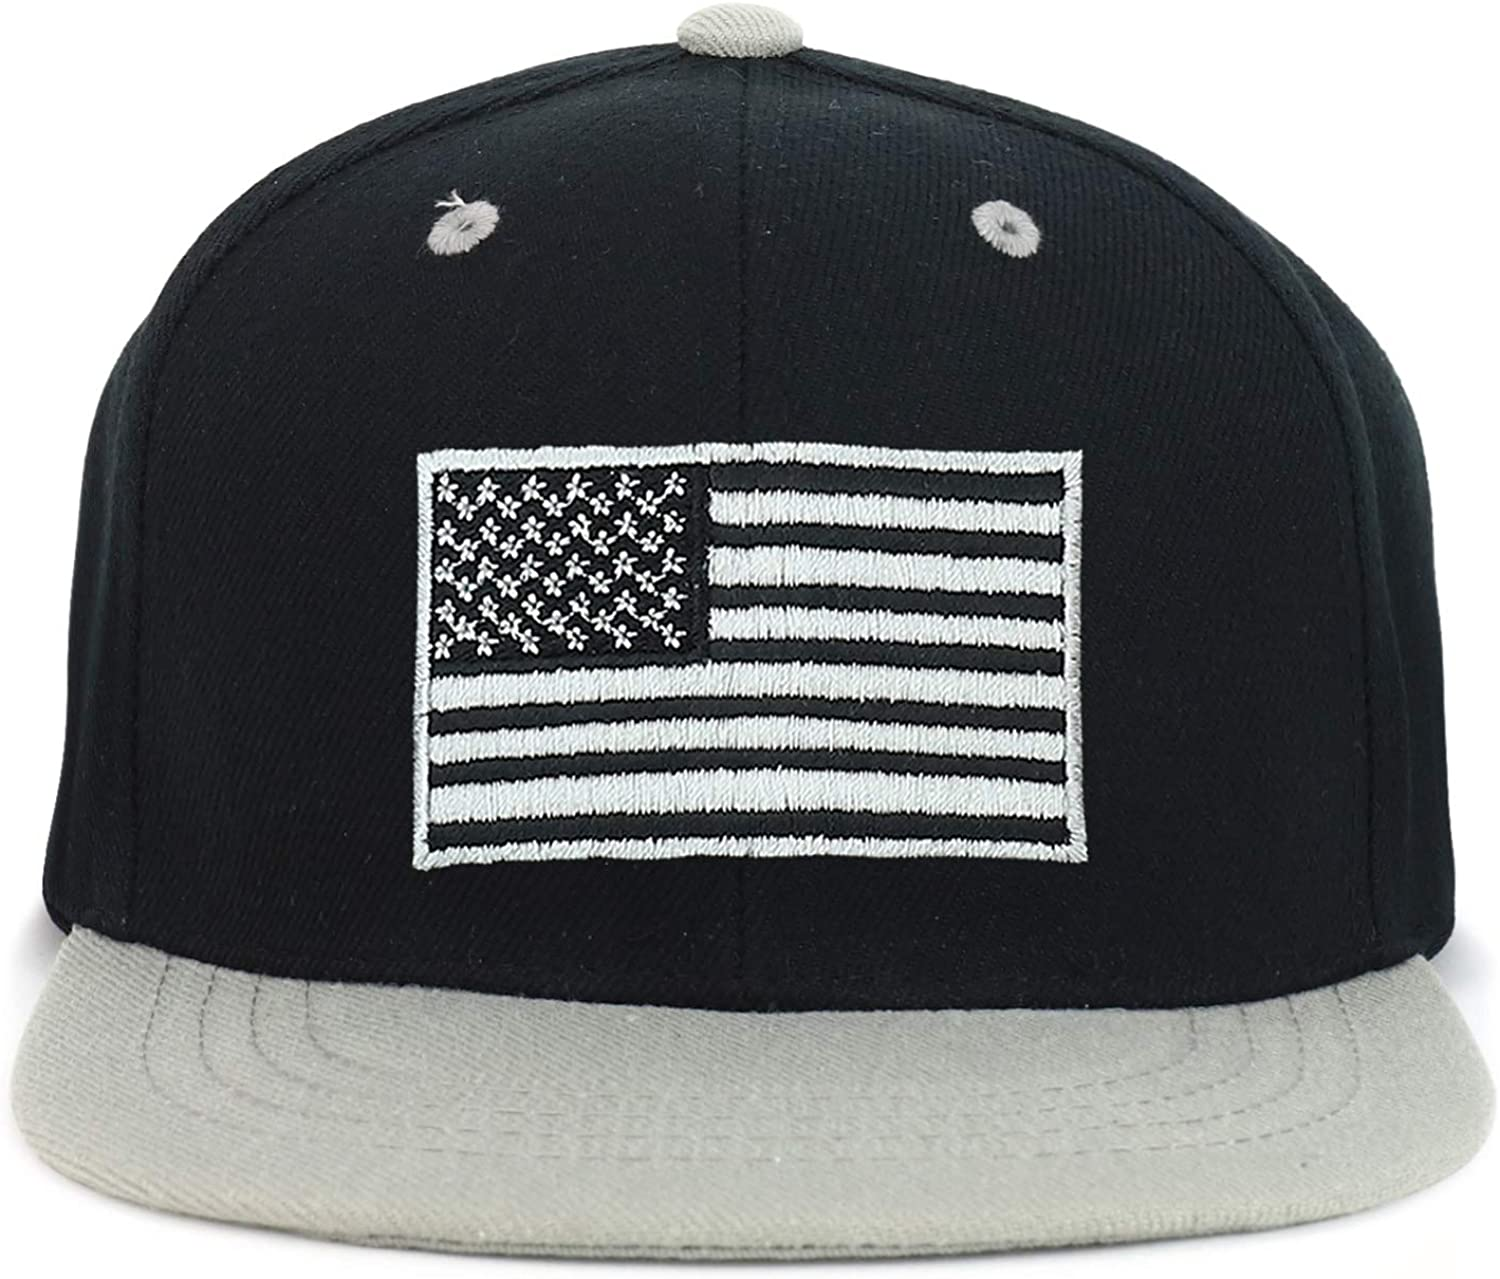 Armycrew Youth Kids American Flag Embroidered Flat Bill Snapback 2-Tone Baseball Cap